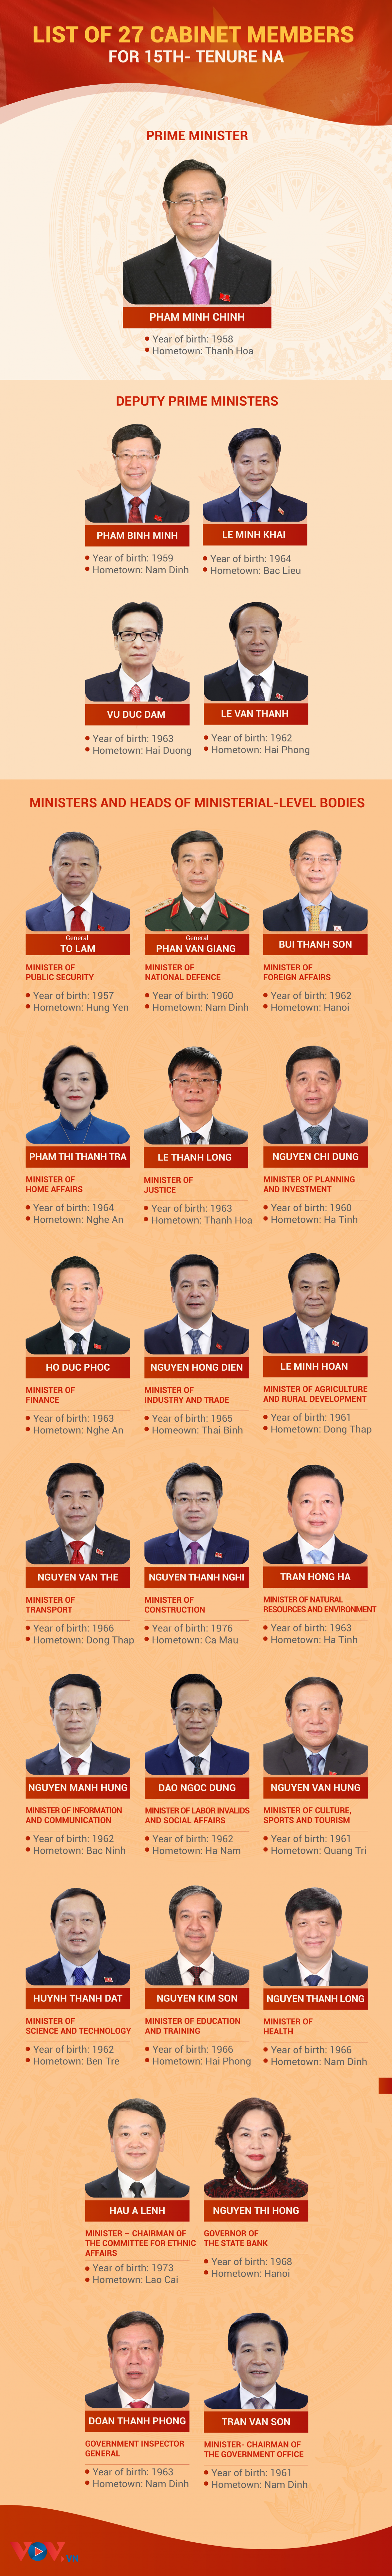 Cabinet line up for 2021-2026